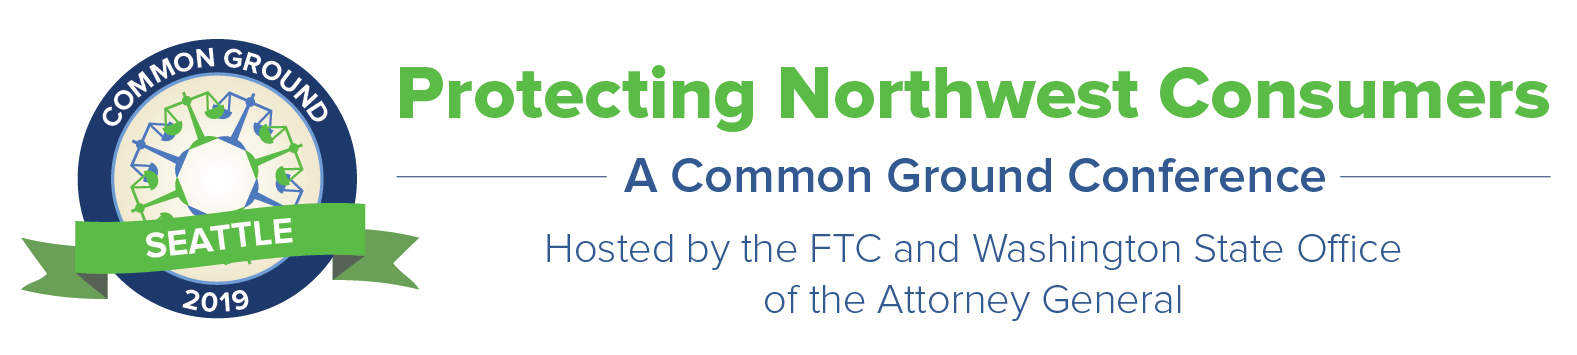 NW common ground logo